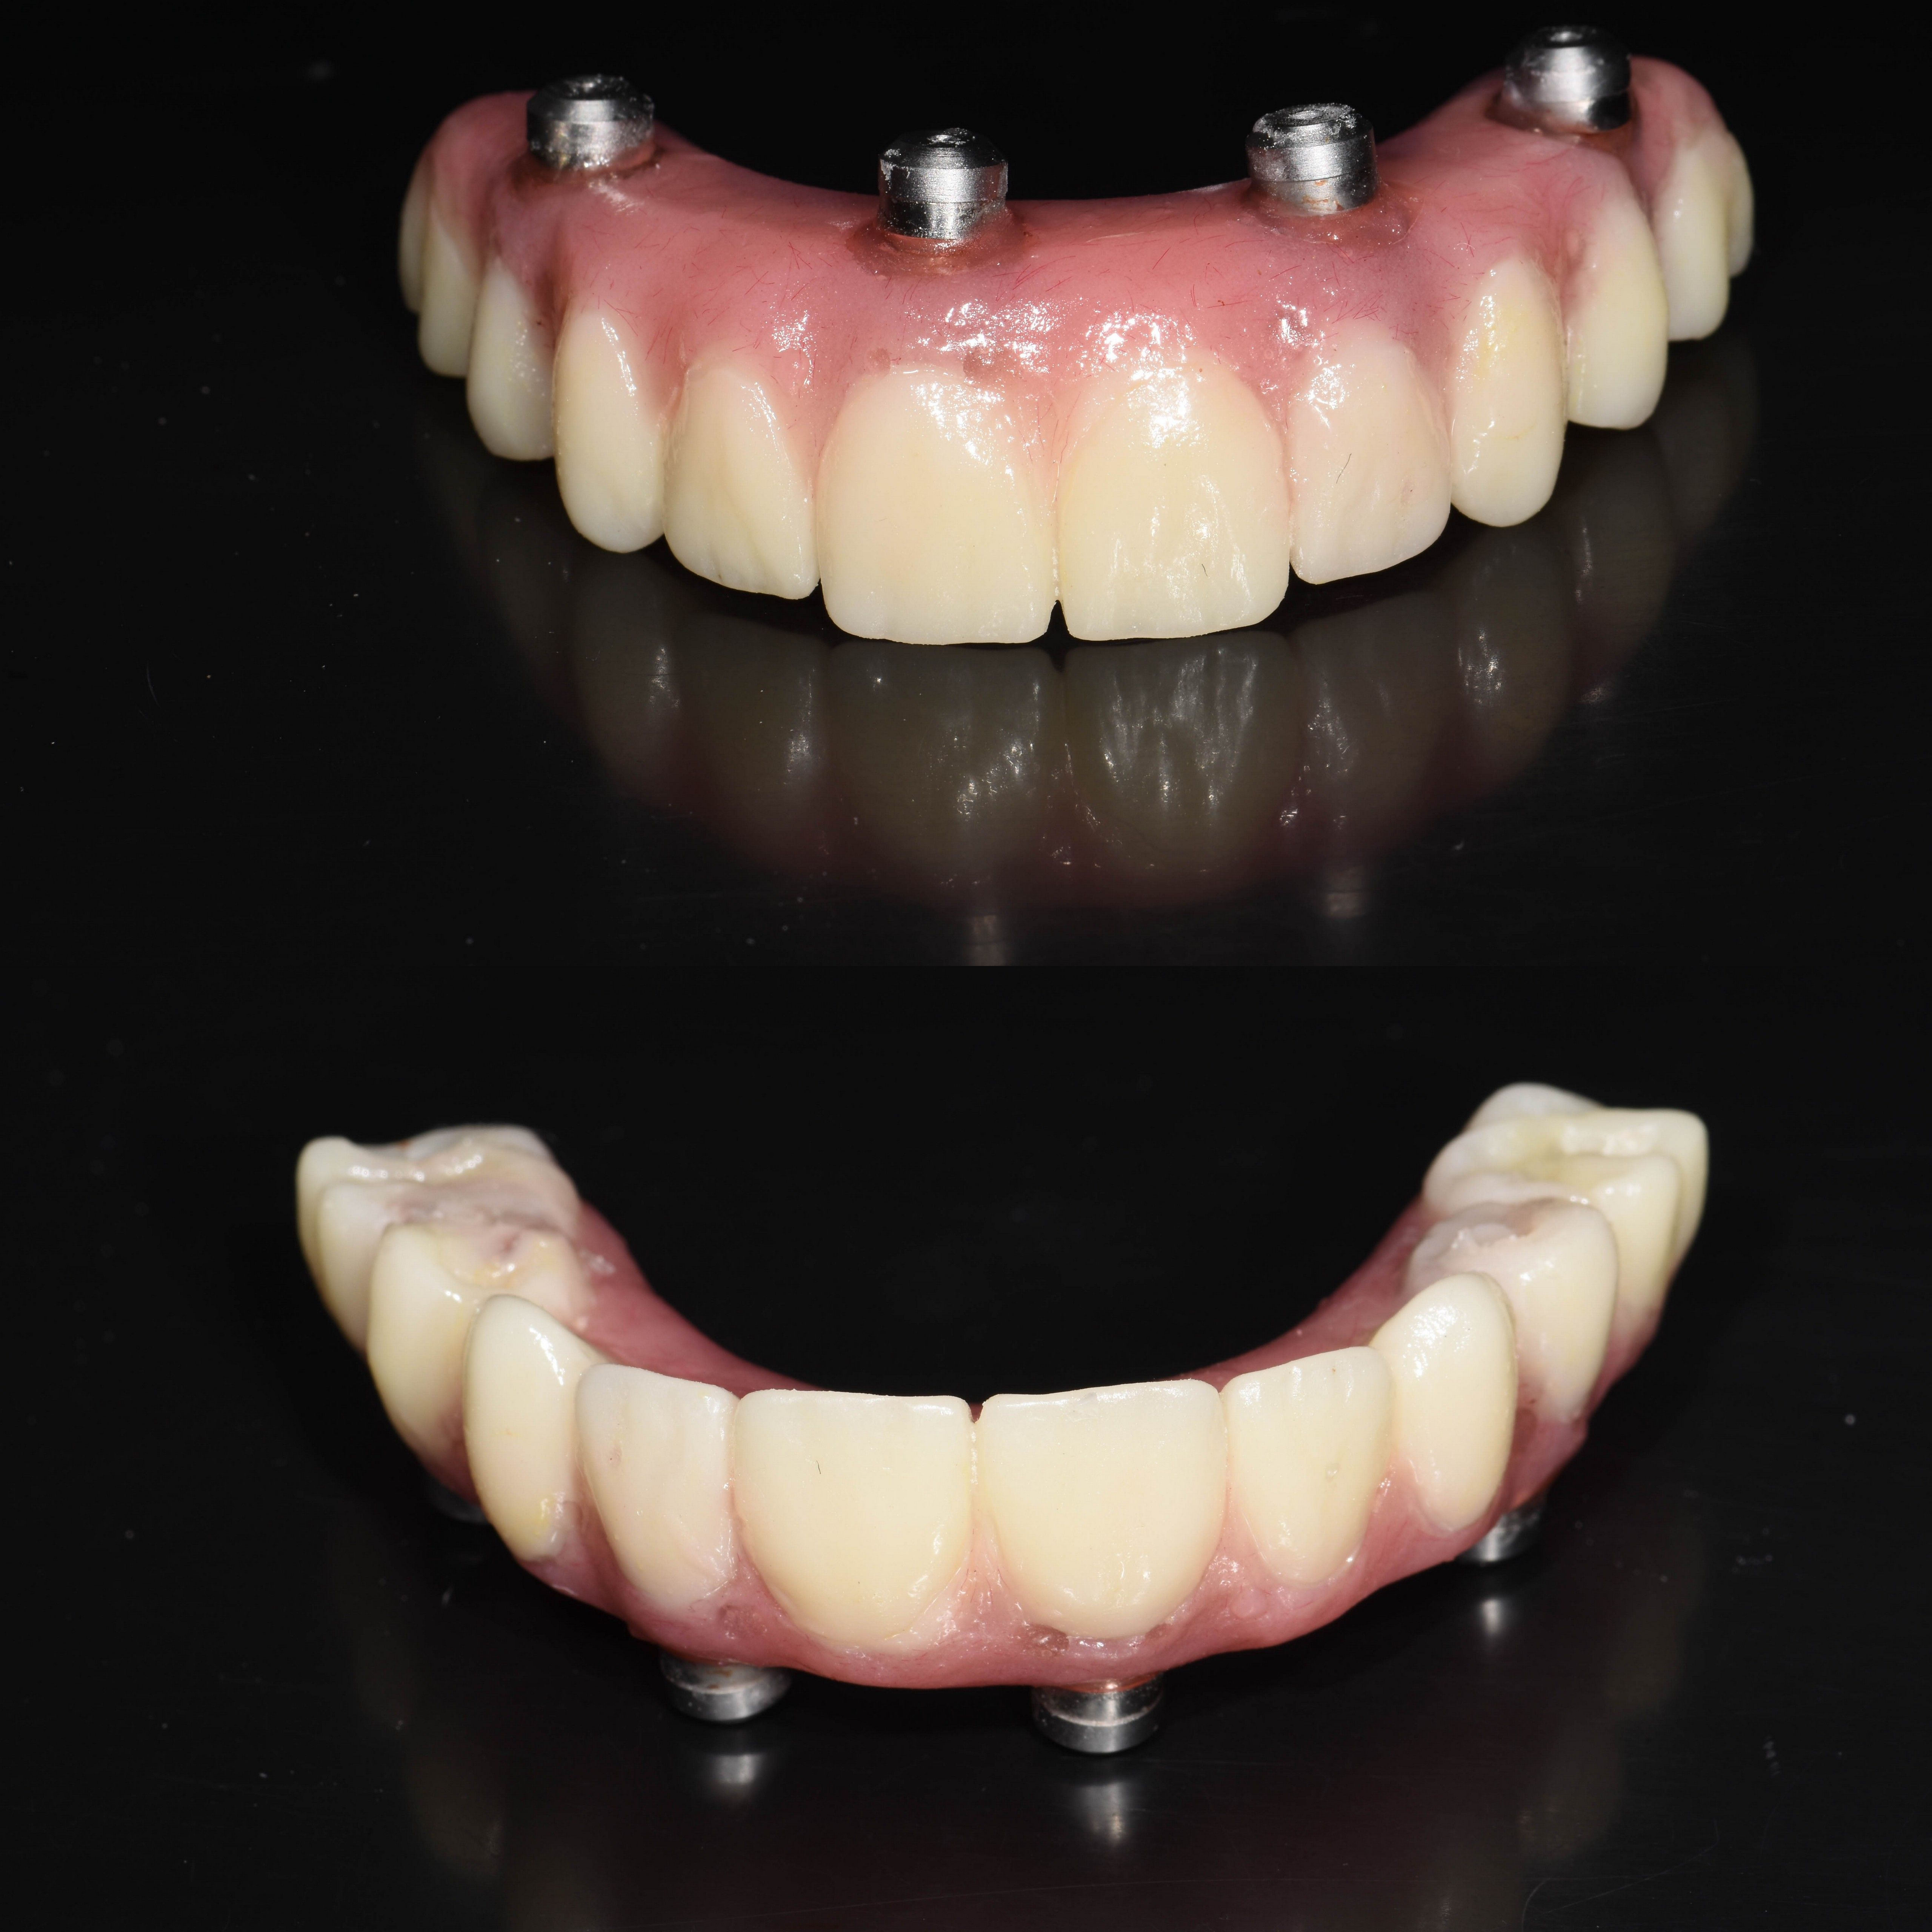 All On 4 Same Day Teeth Also Known As Hybrid Dentures These Are The Temporary Screwed In Teeth That The Patient Has At Time Of Dental Dentistry Family Dental